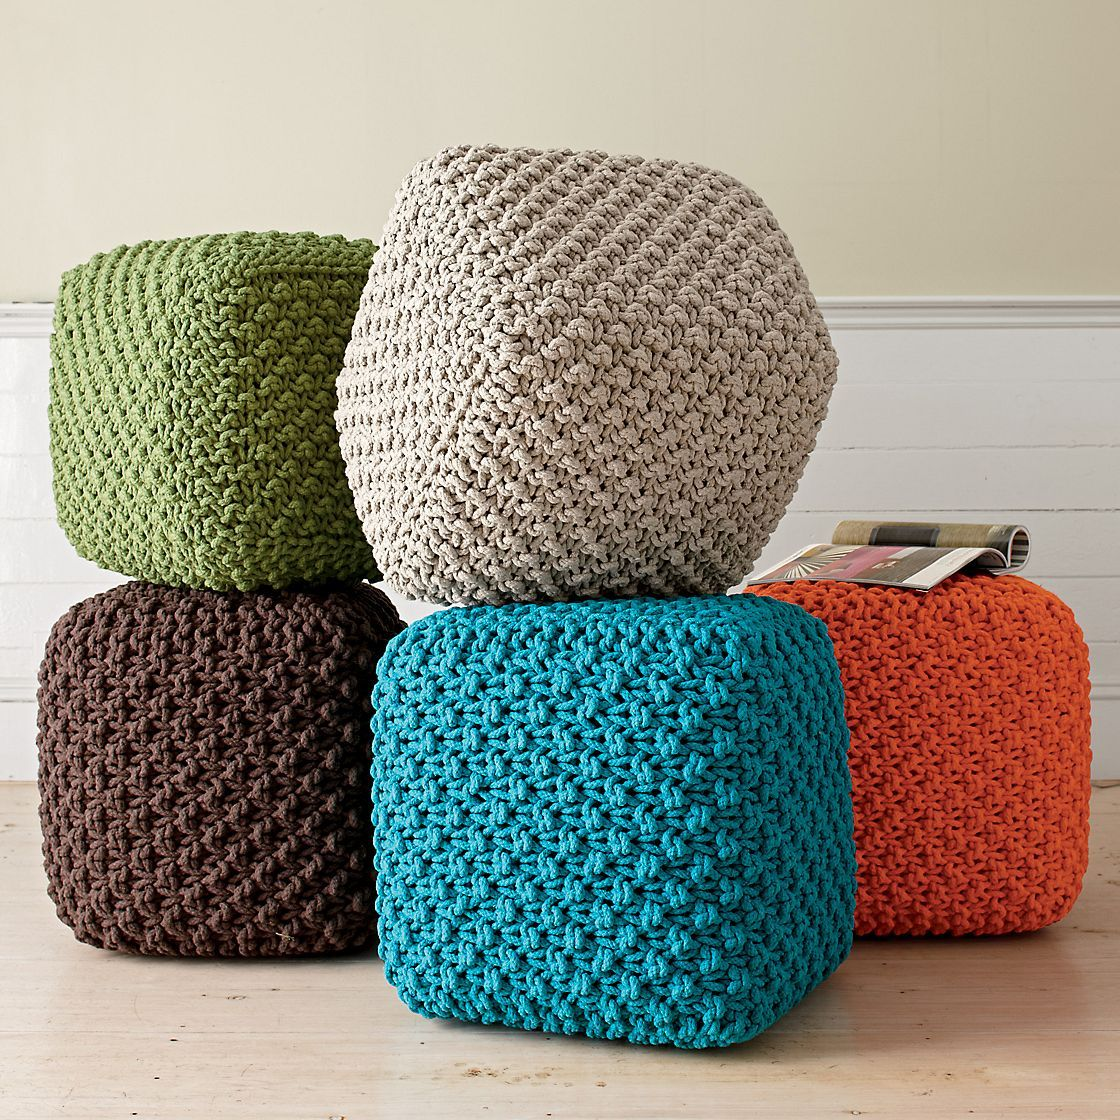 Square Poufs ... good foot rests or casual seating. I love this ...